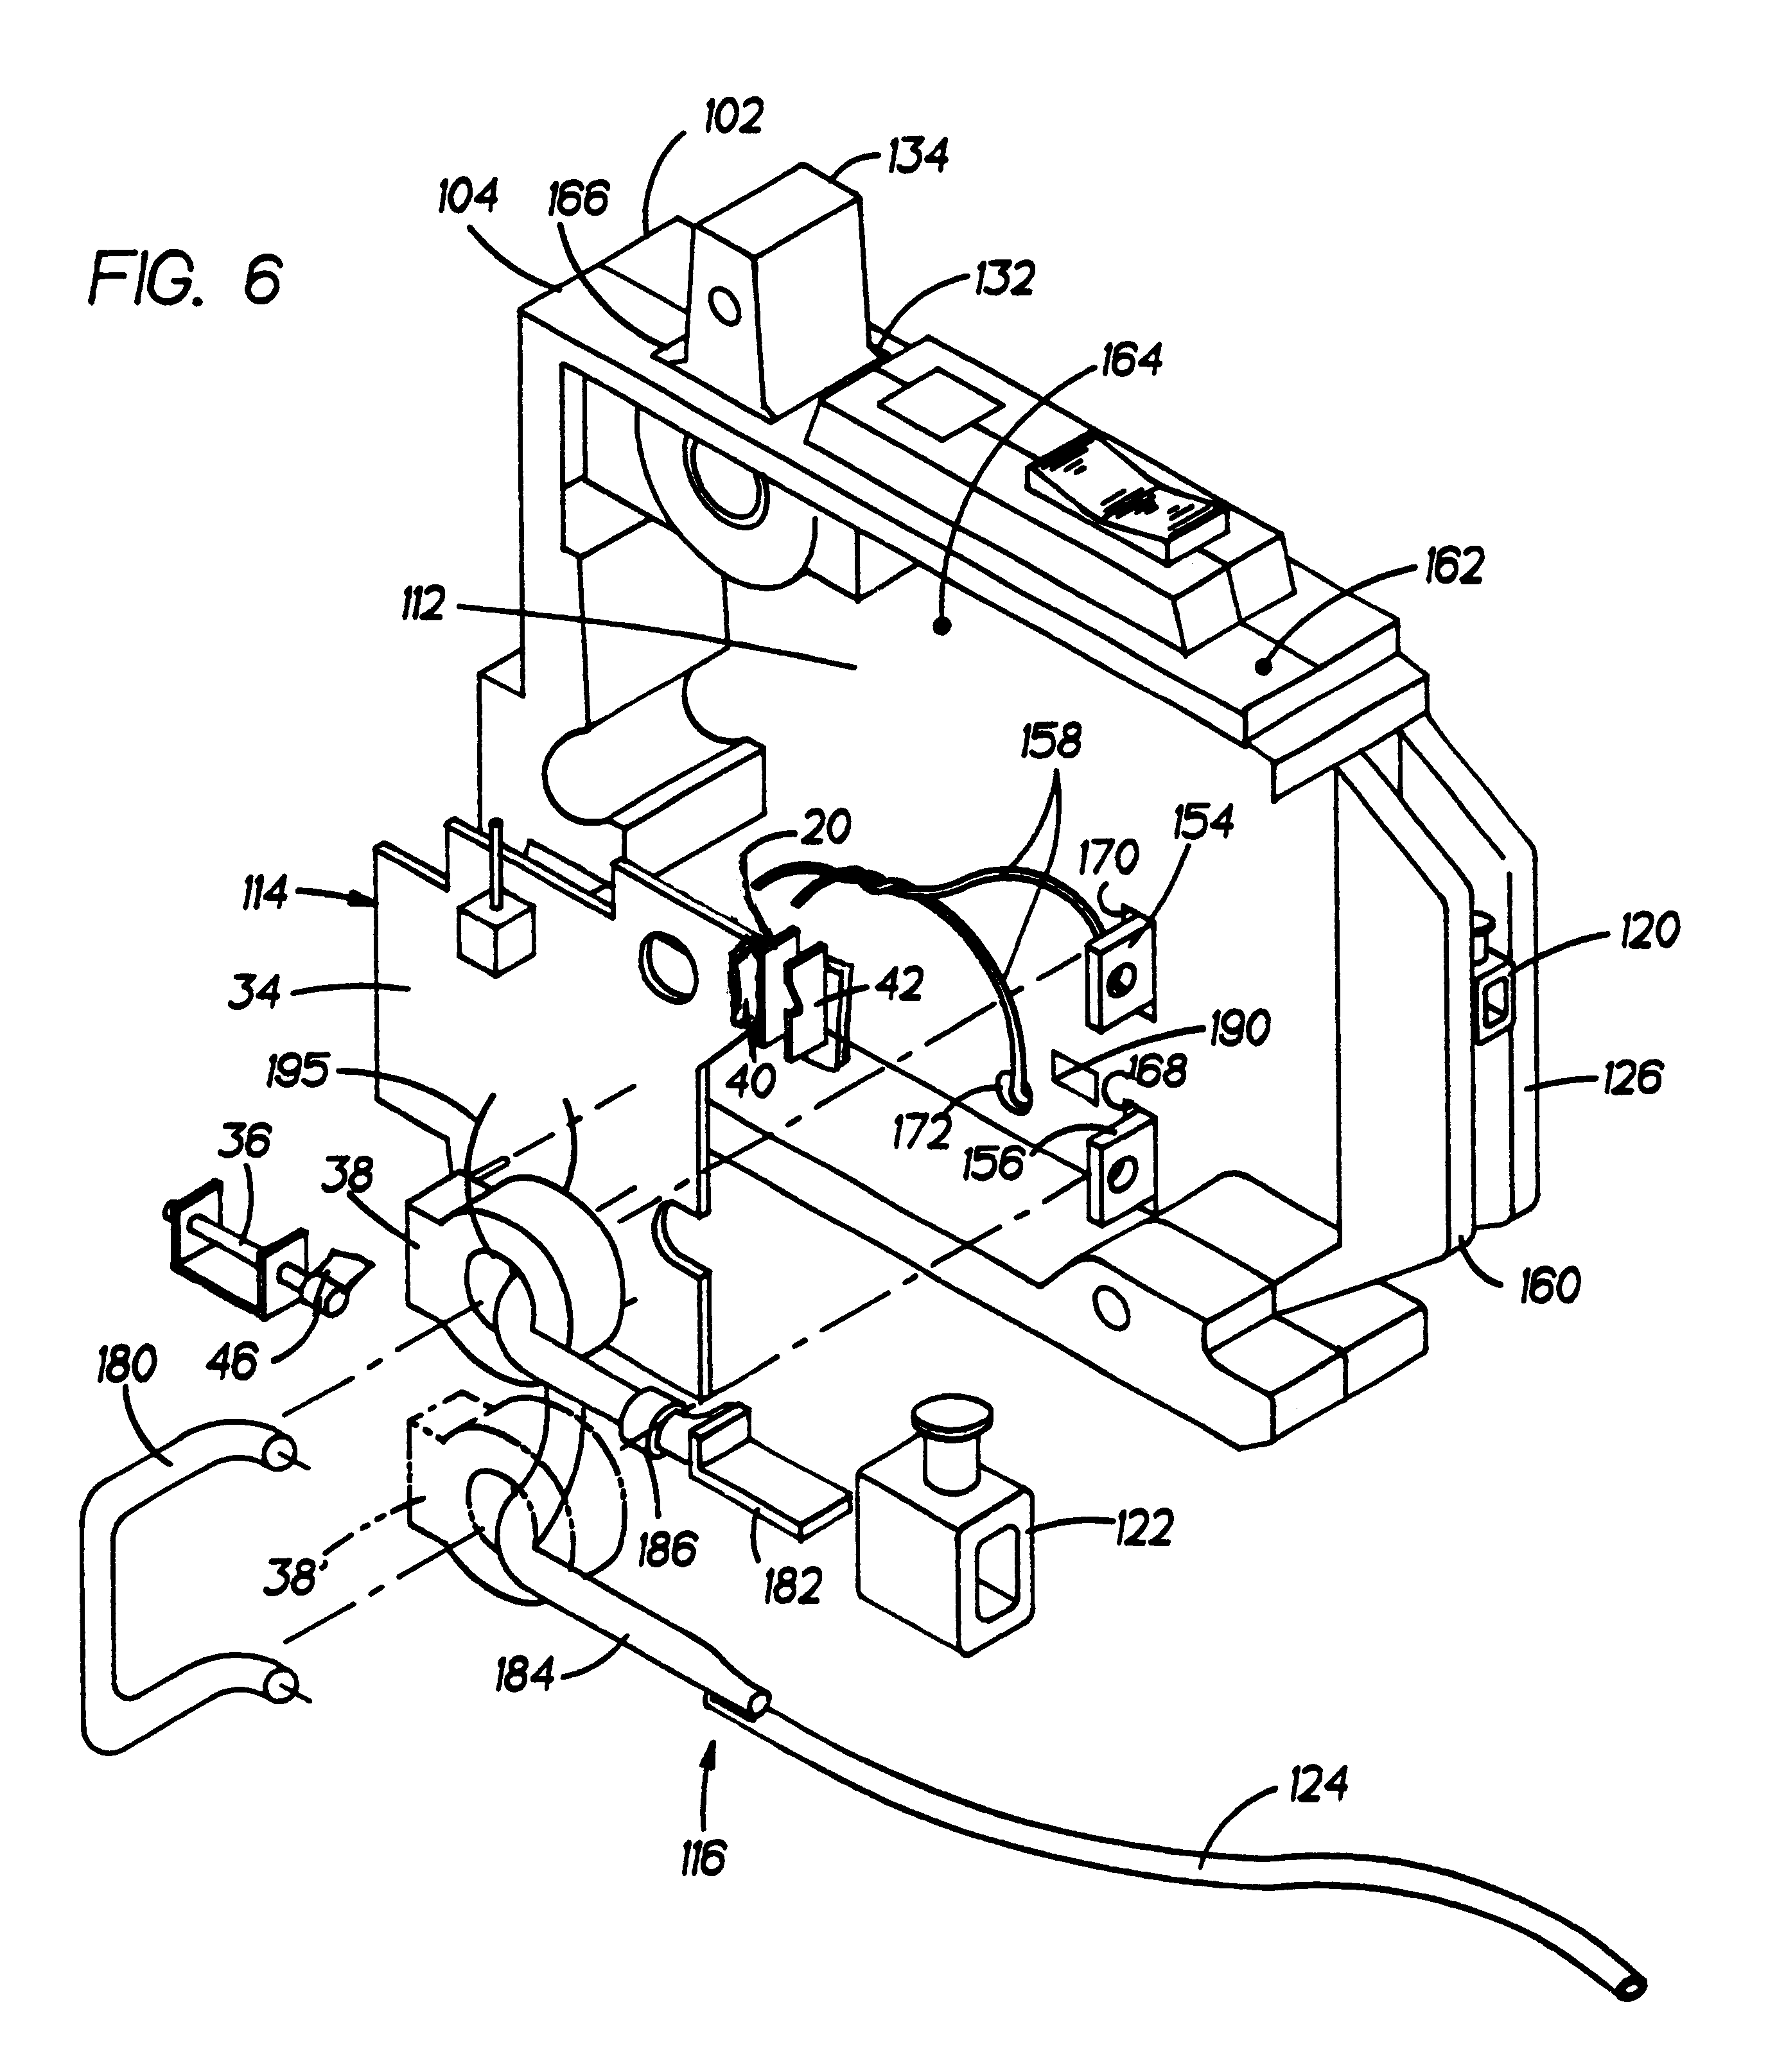 patent us6259340 - circuit breaker with a dual test button mechanism